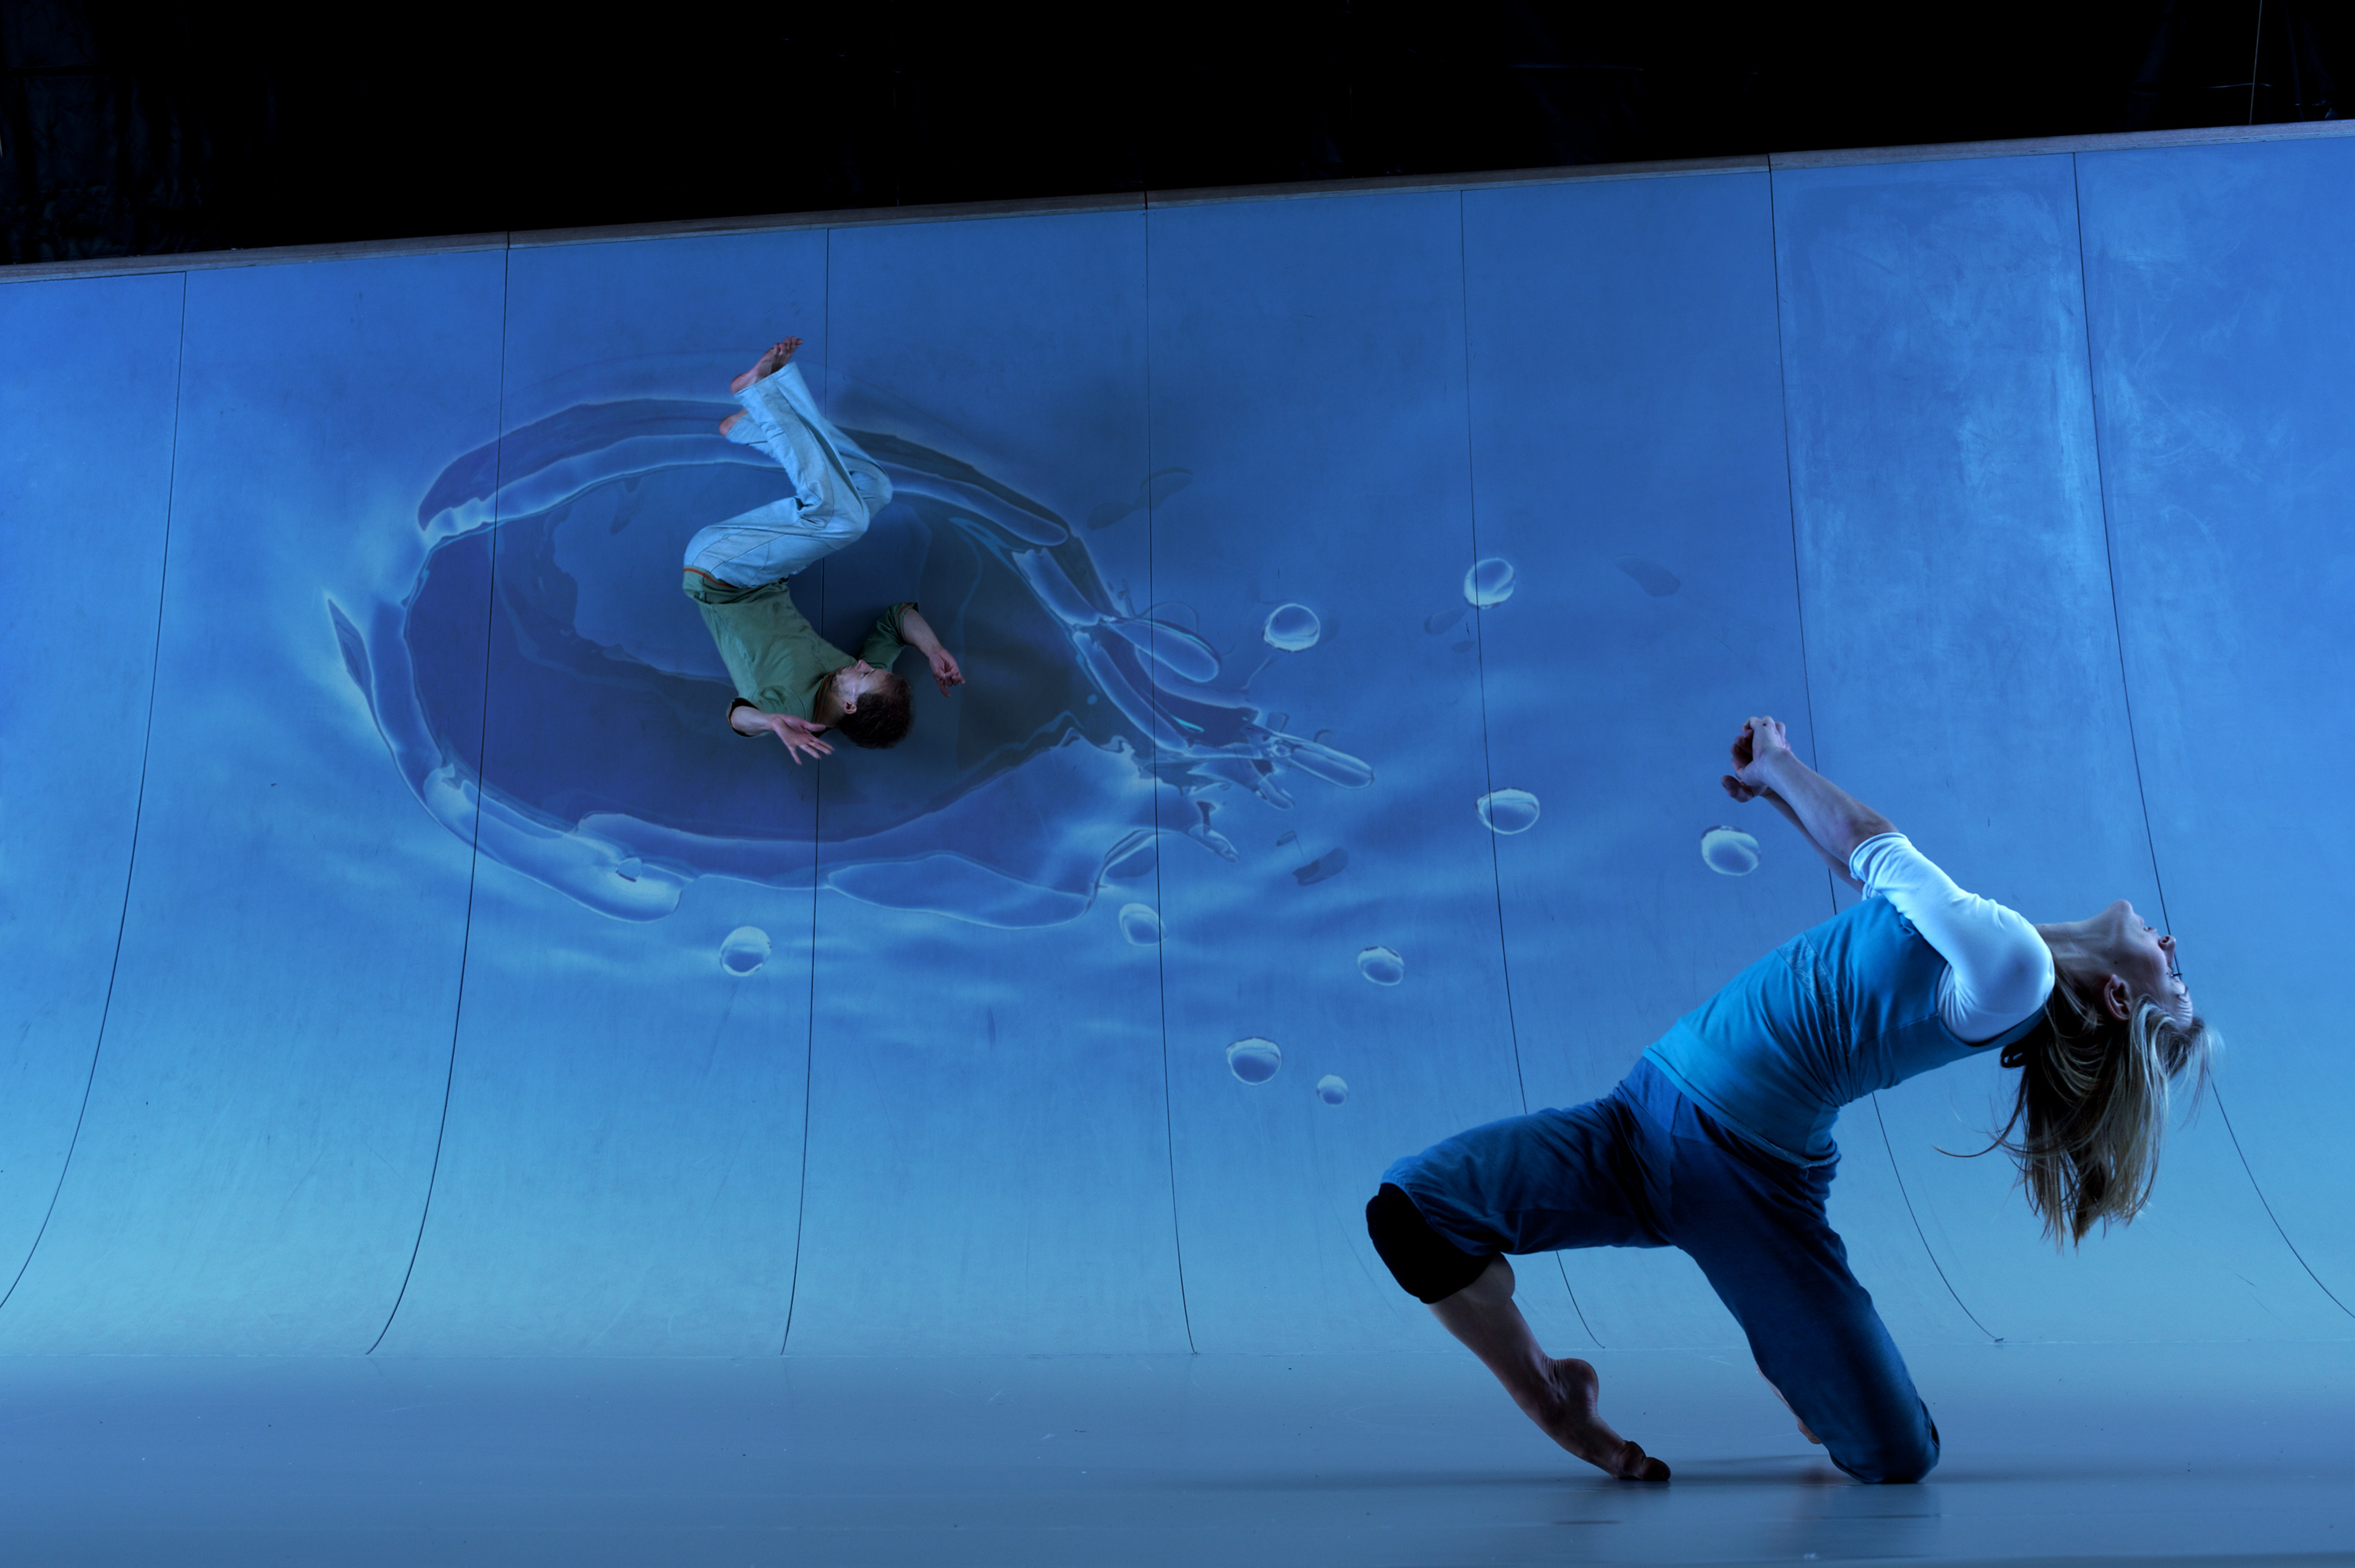 Two dancers from Motionhouse perform against a video backdrop, which features a water splash pattern where one performer appears to have hit the screen.